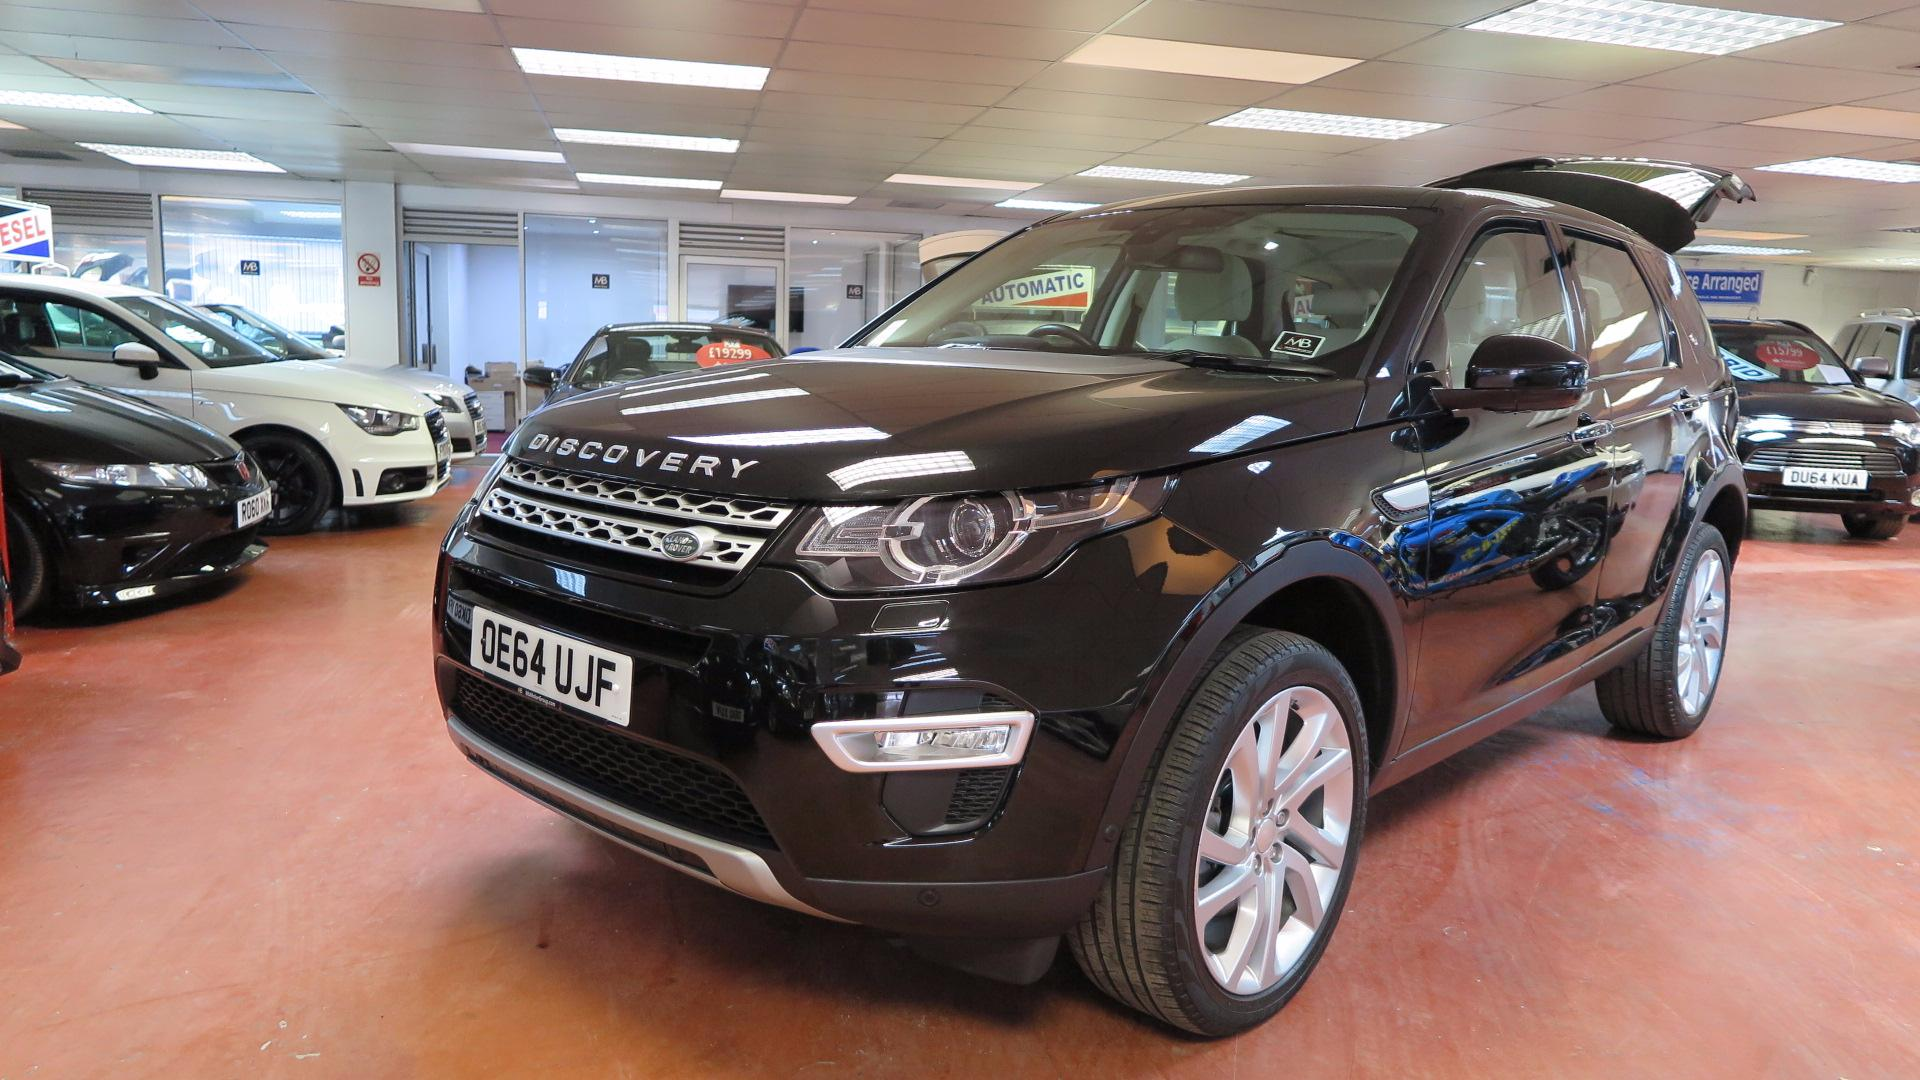 s discovery seat john rover on price autoline sport time journal land indussilver landrover